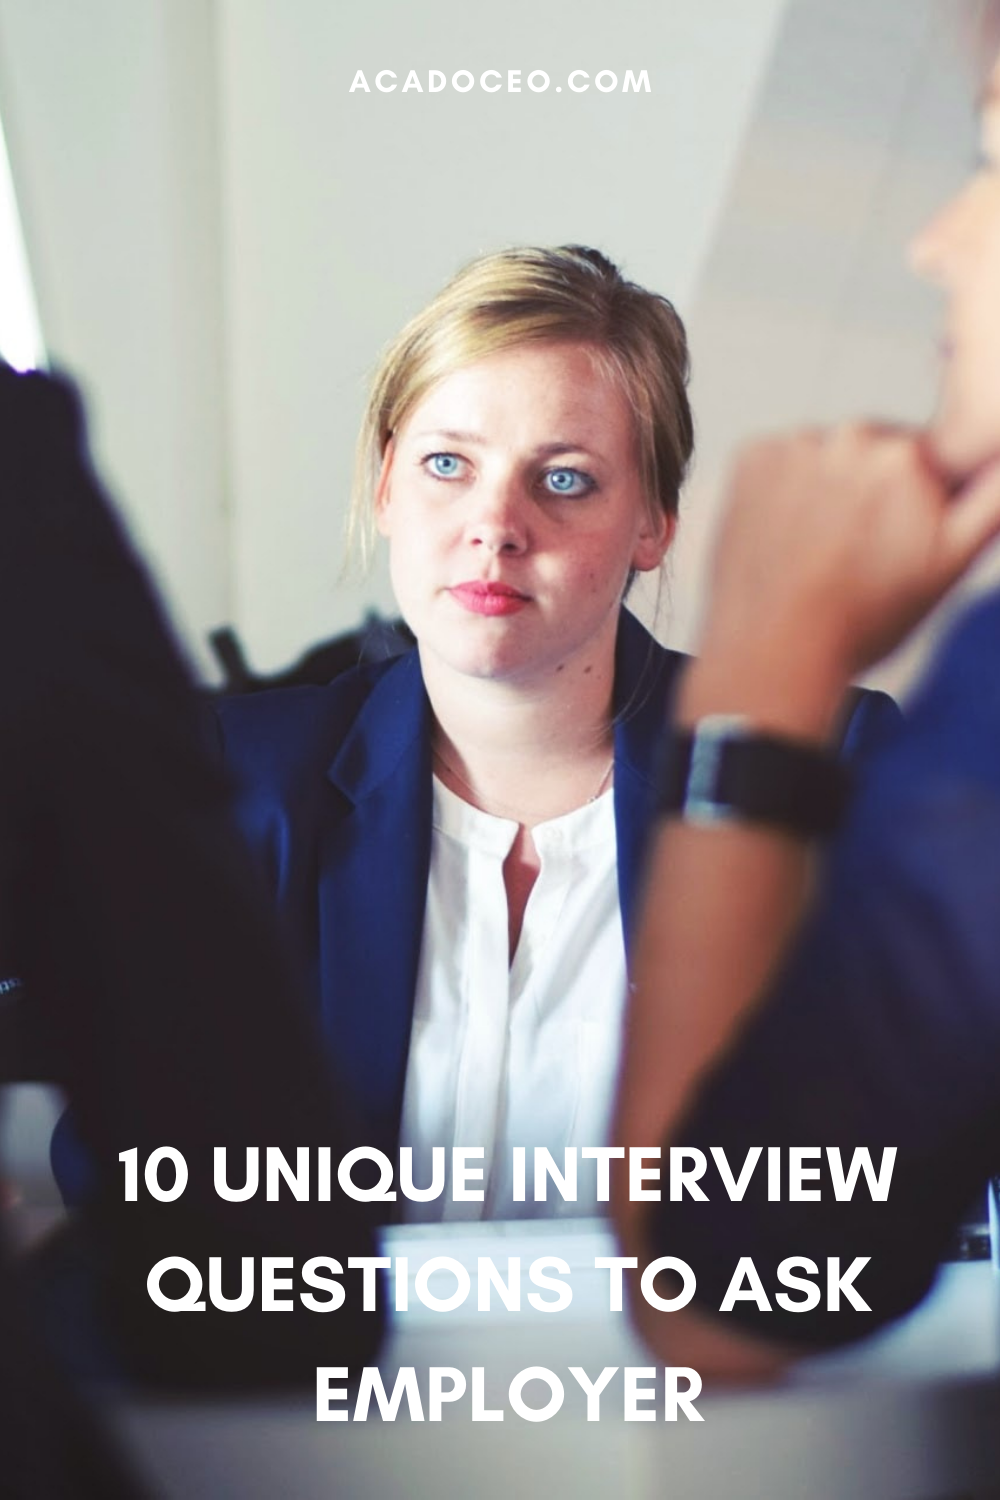 10 UNIQUE INTERVIEW QUESTIONS TO ASK EMPLOYER